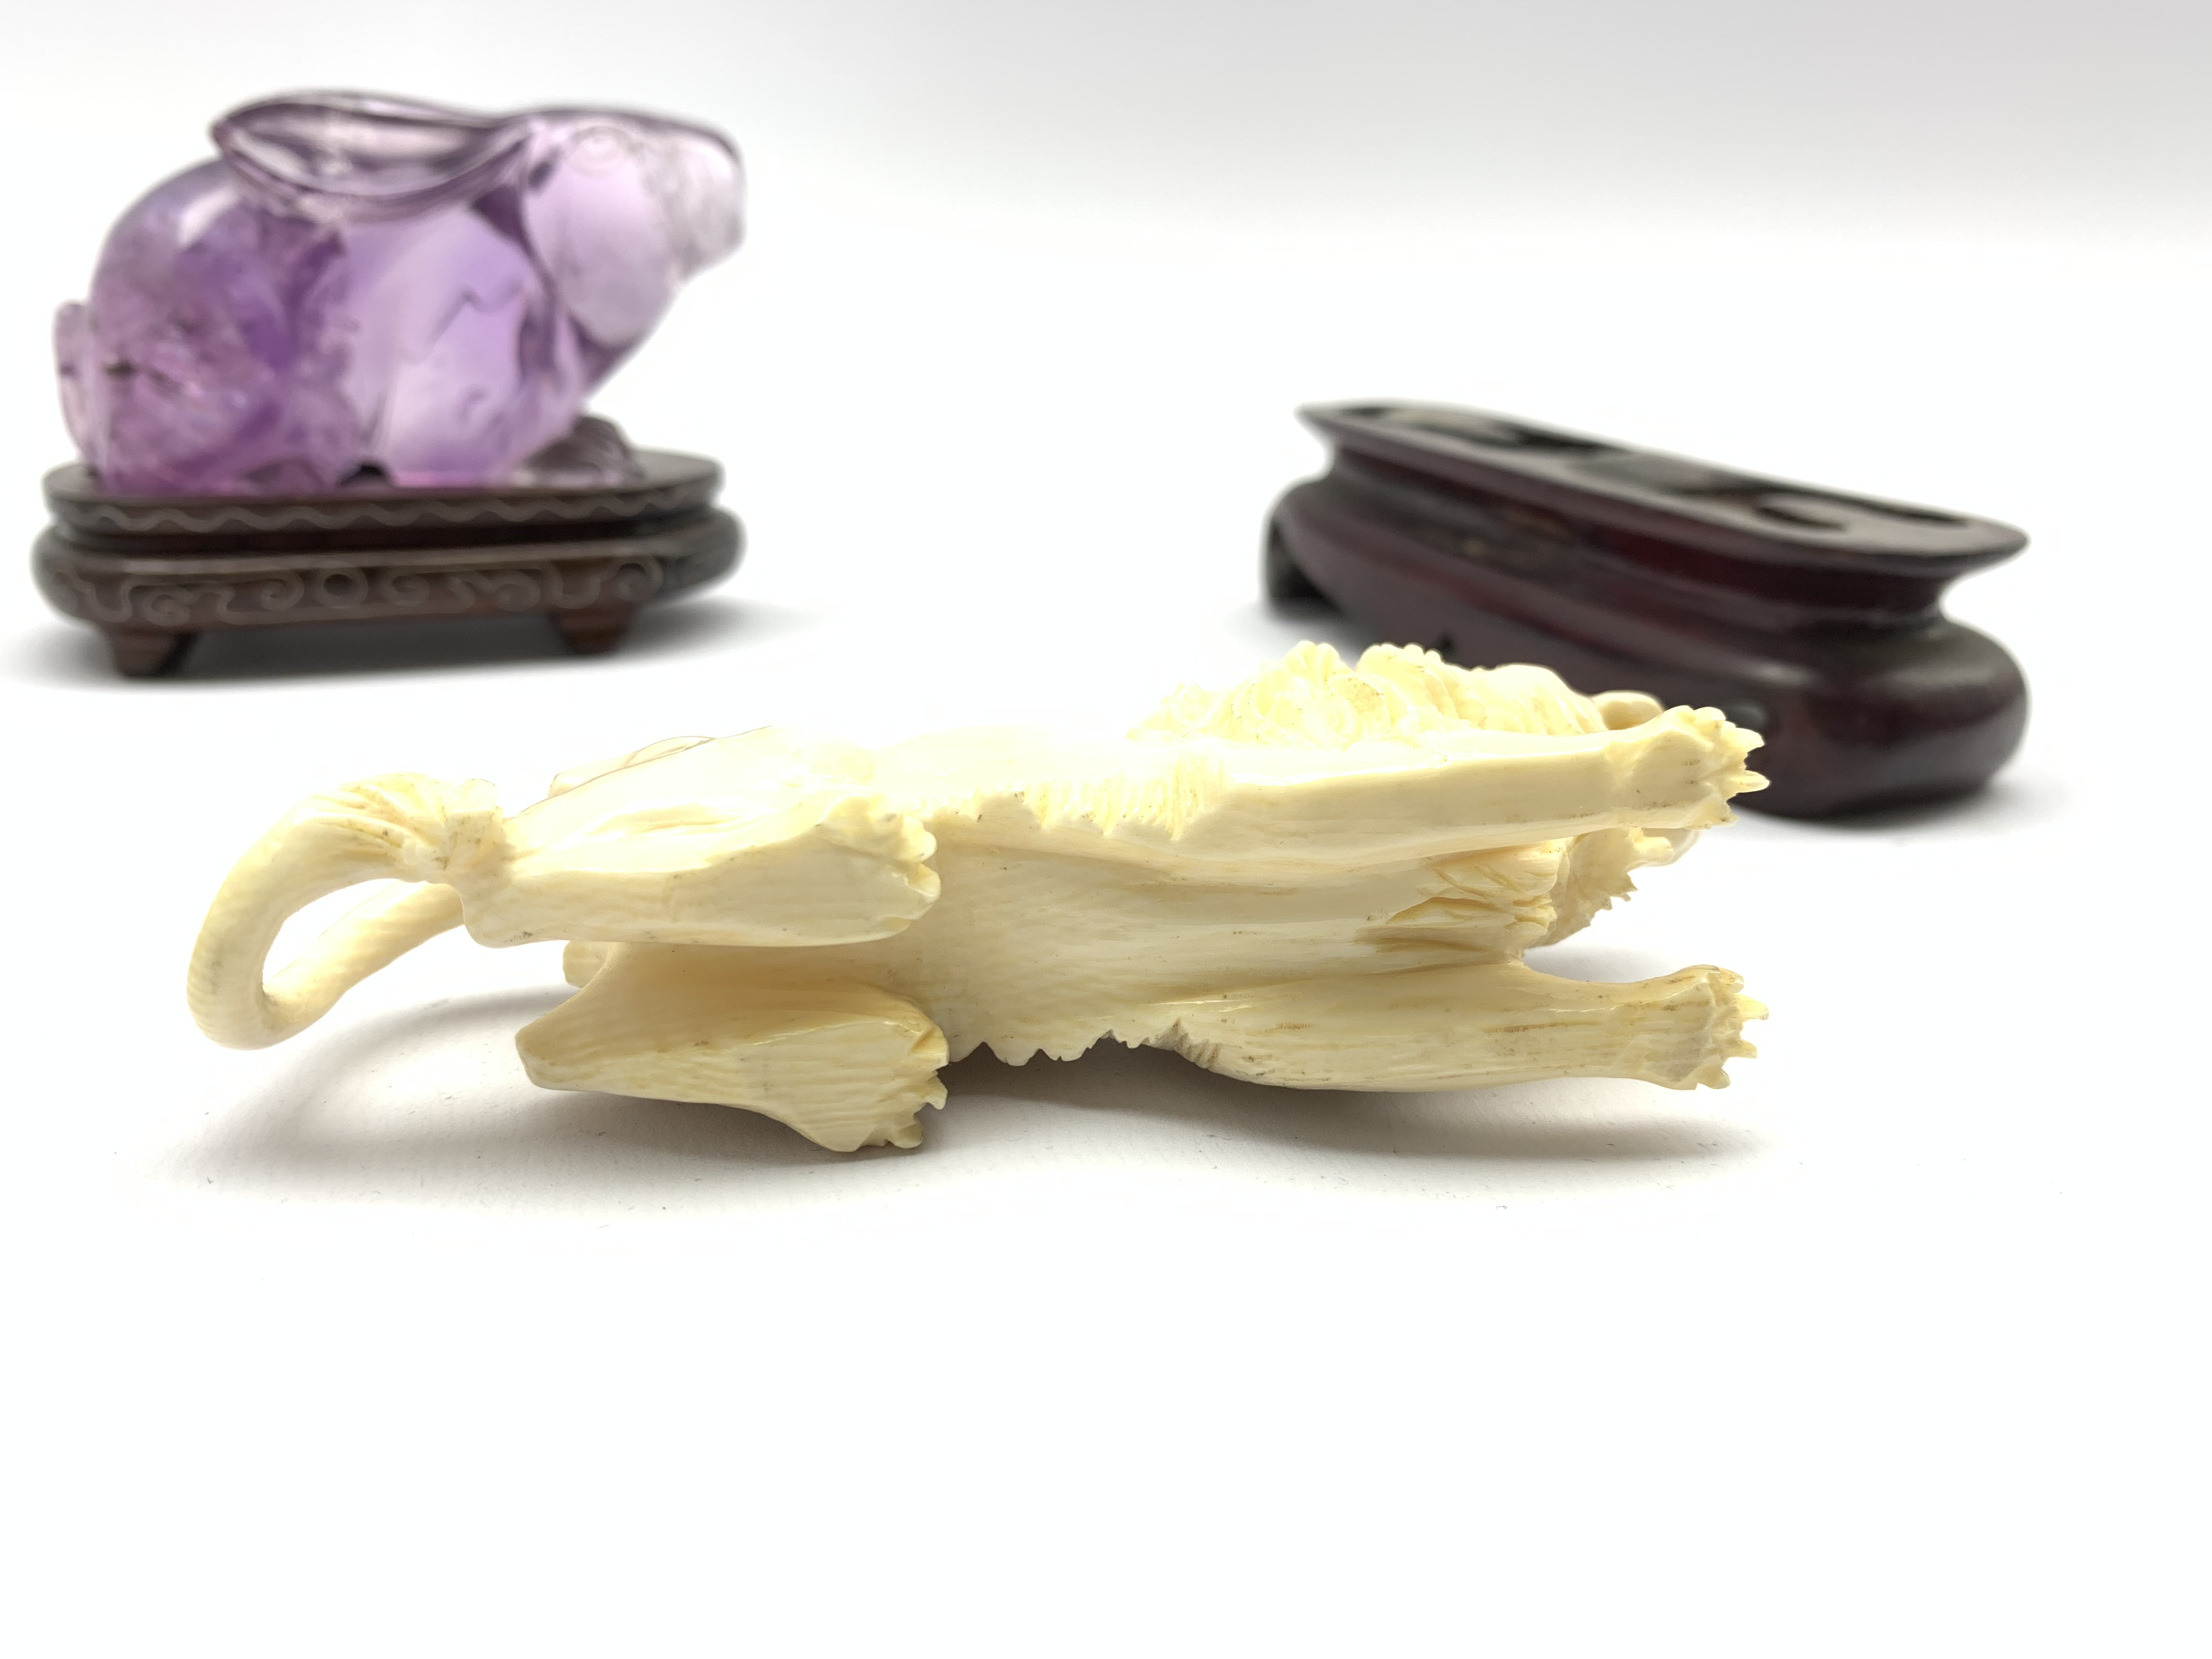 Oriental amethyst glass rabbit on a wooden stand W9cm and an early 20th century carved ivory figure - Image 10 of 11